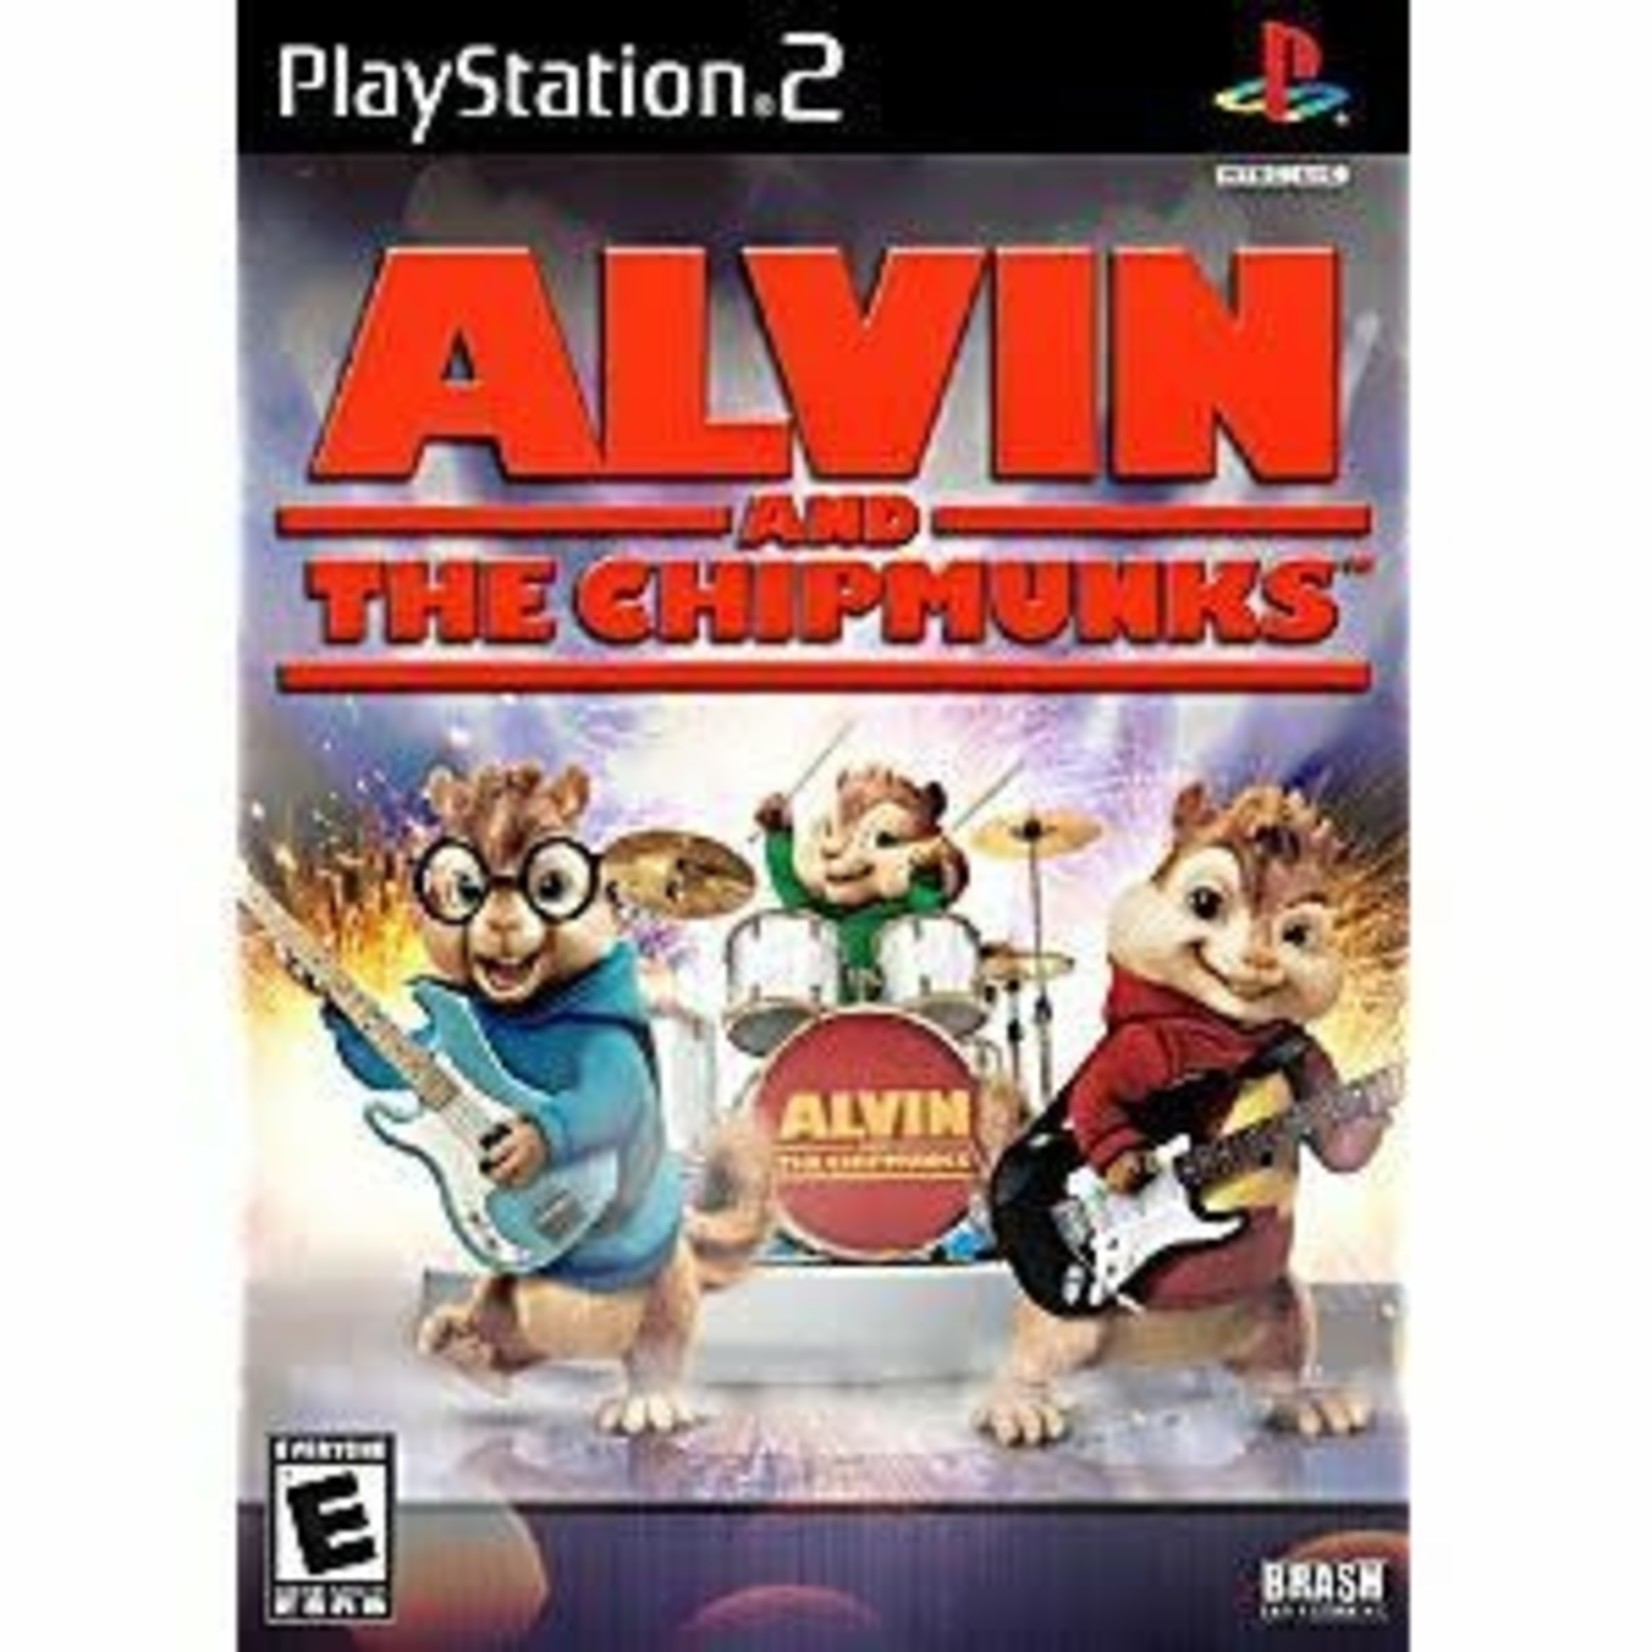 PS2U-ALVIN AND THE CHIPMUNKS